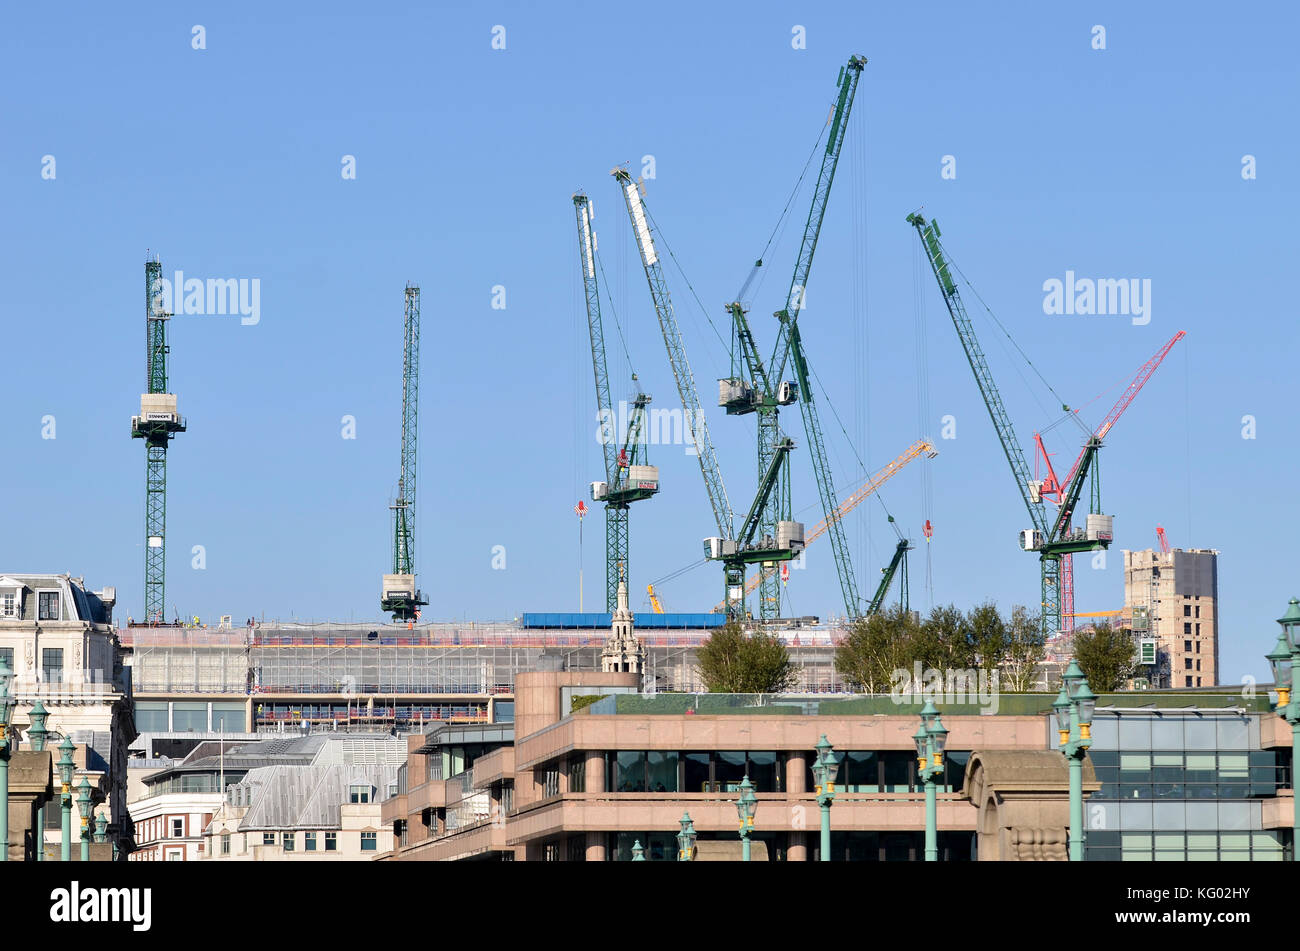 Cranes, London, UK. Tower cranes seen on the Bloomberg Place development site. - Stock Image